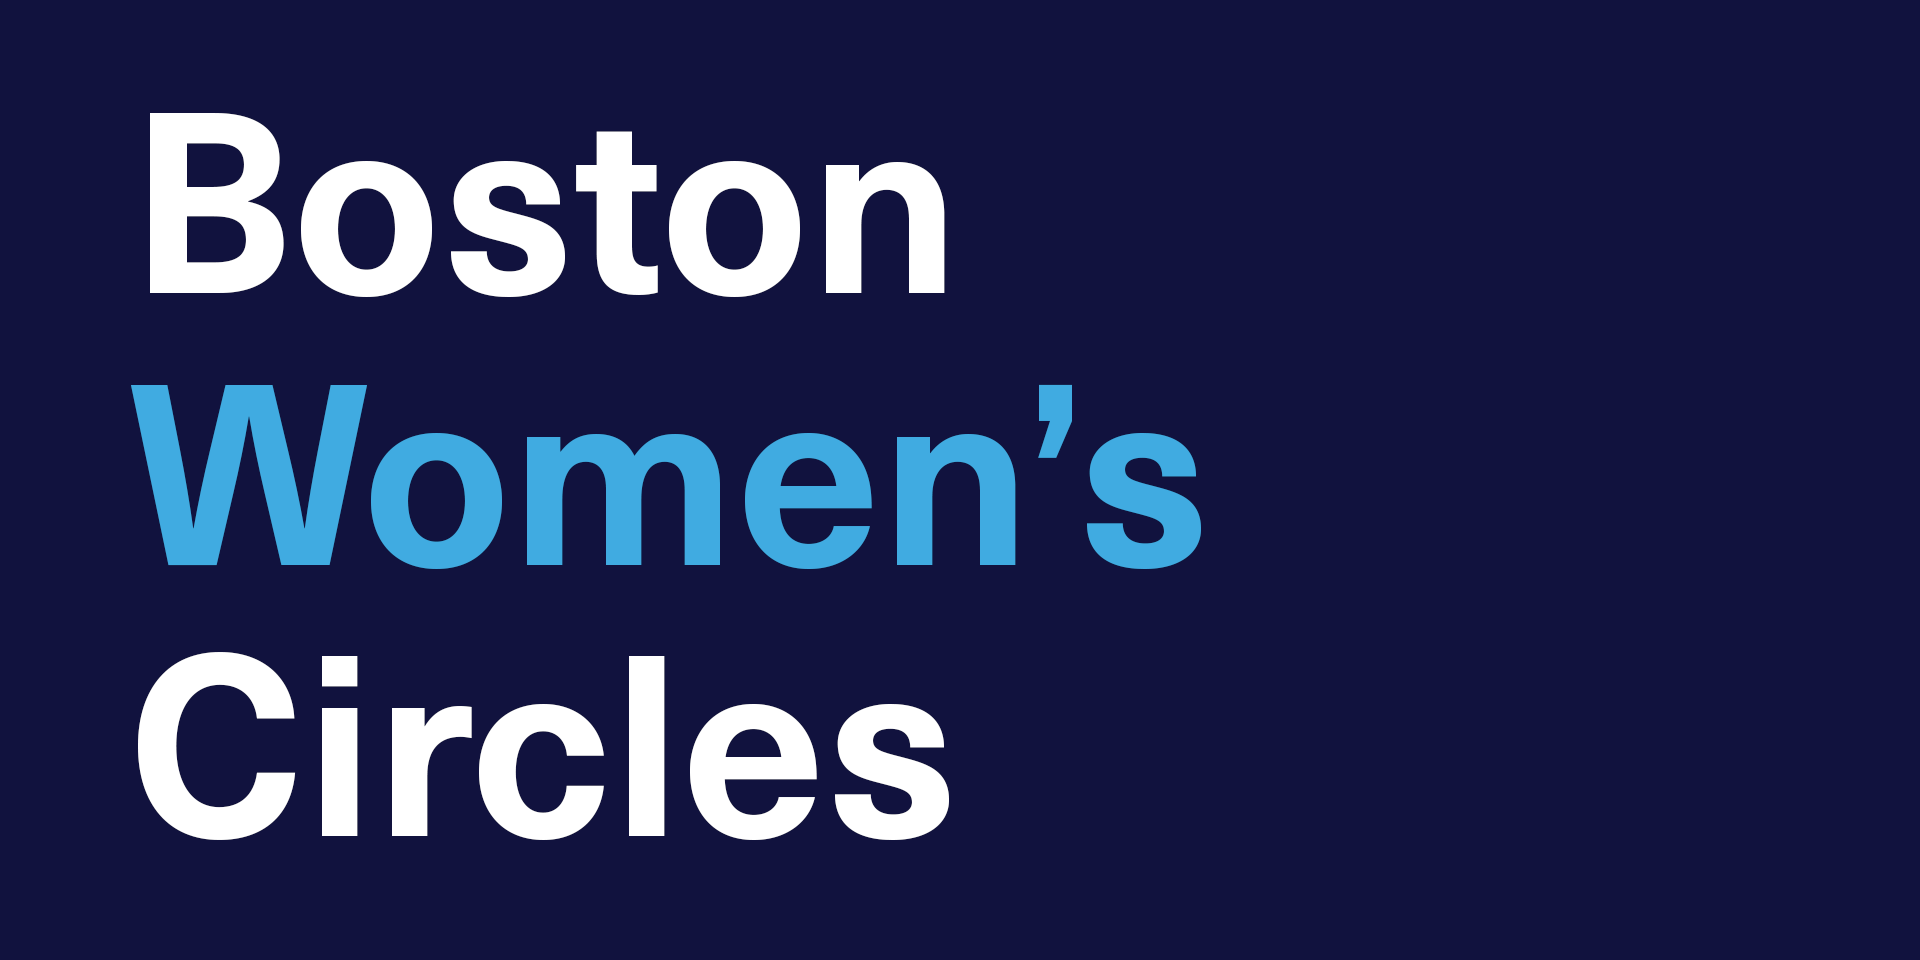 Sign-up for Yale SOM Boston Women's Circles